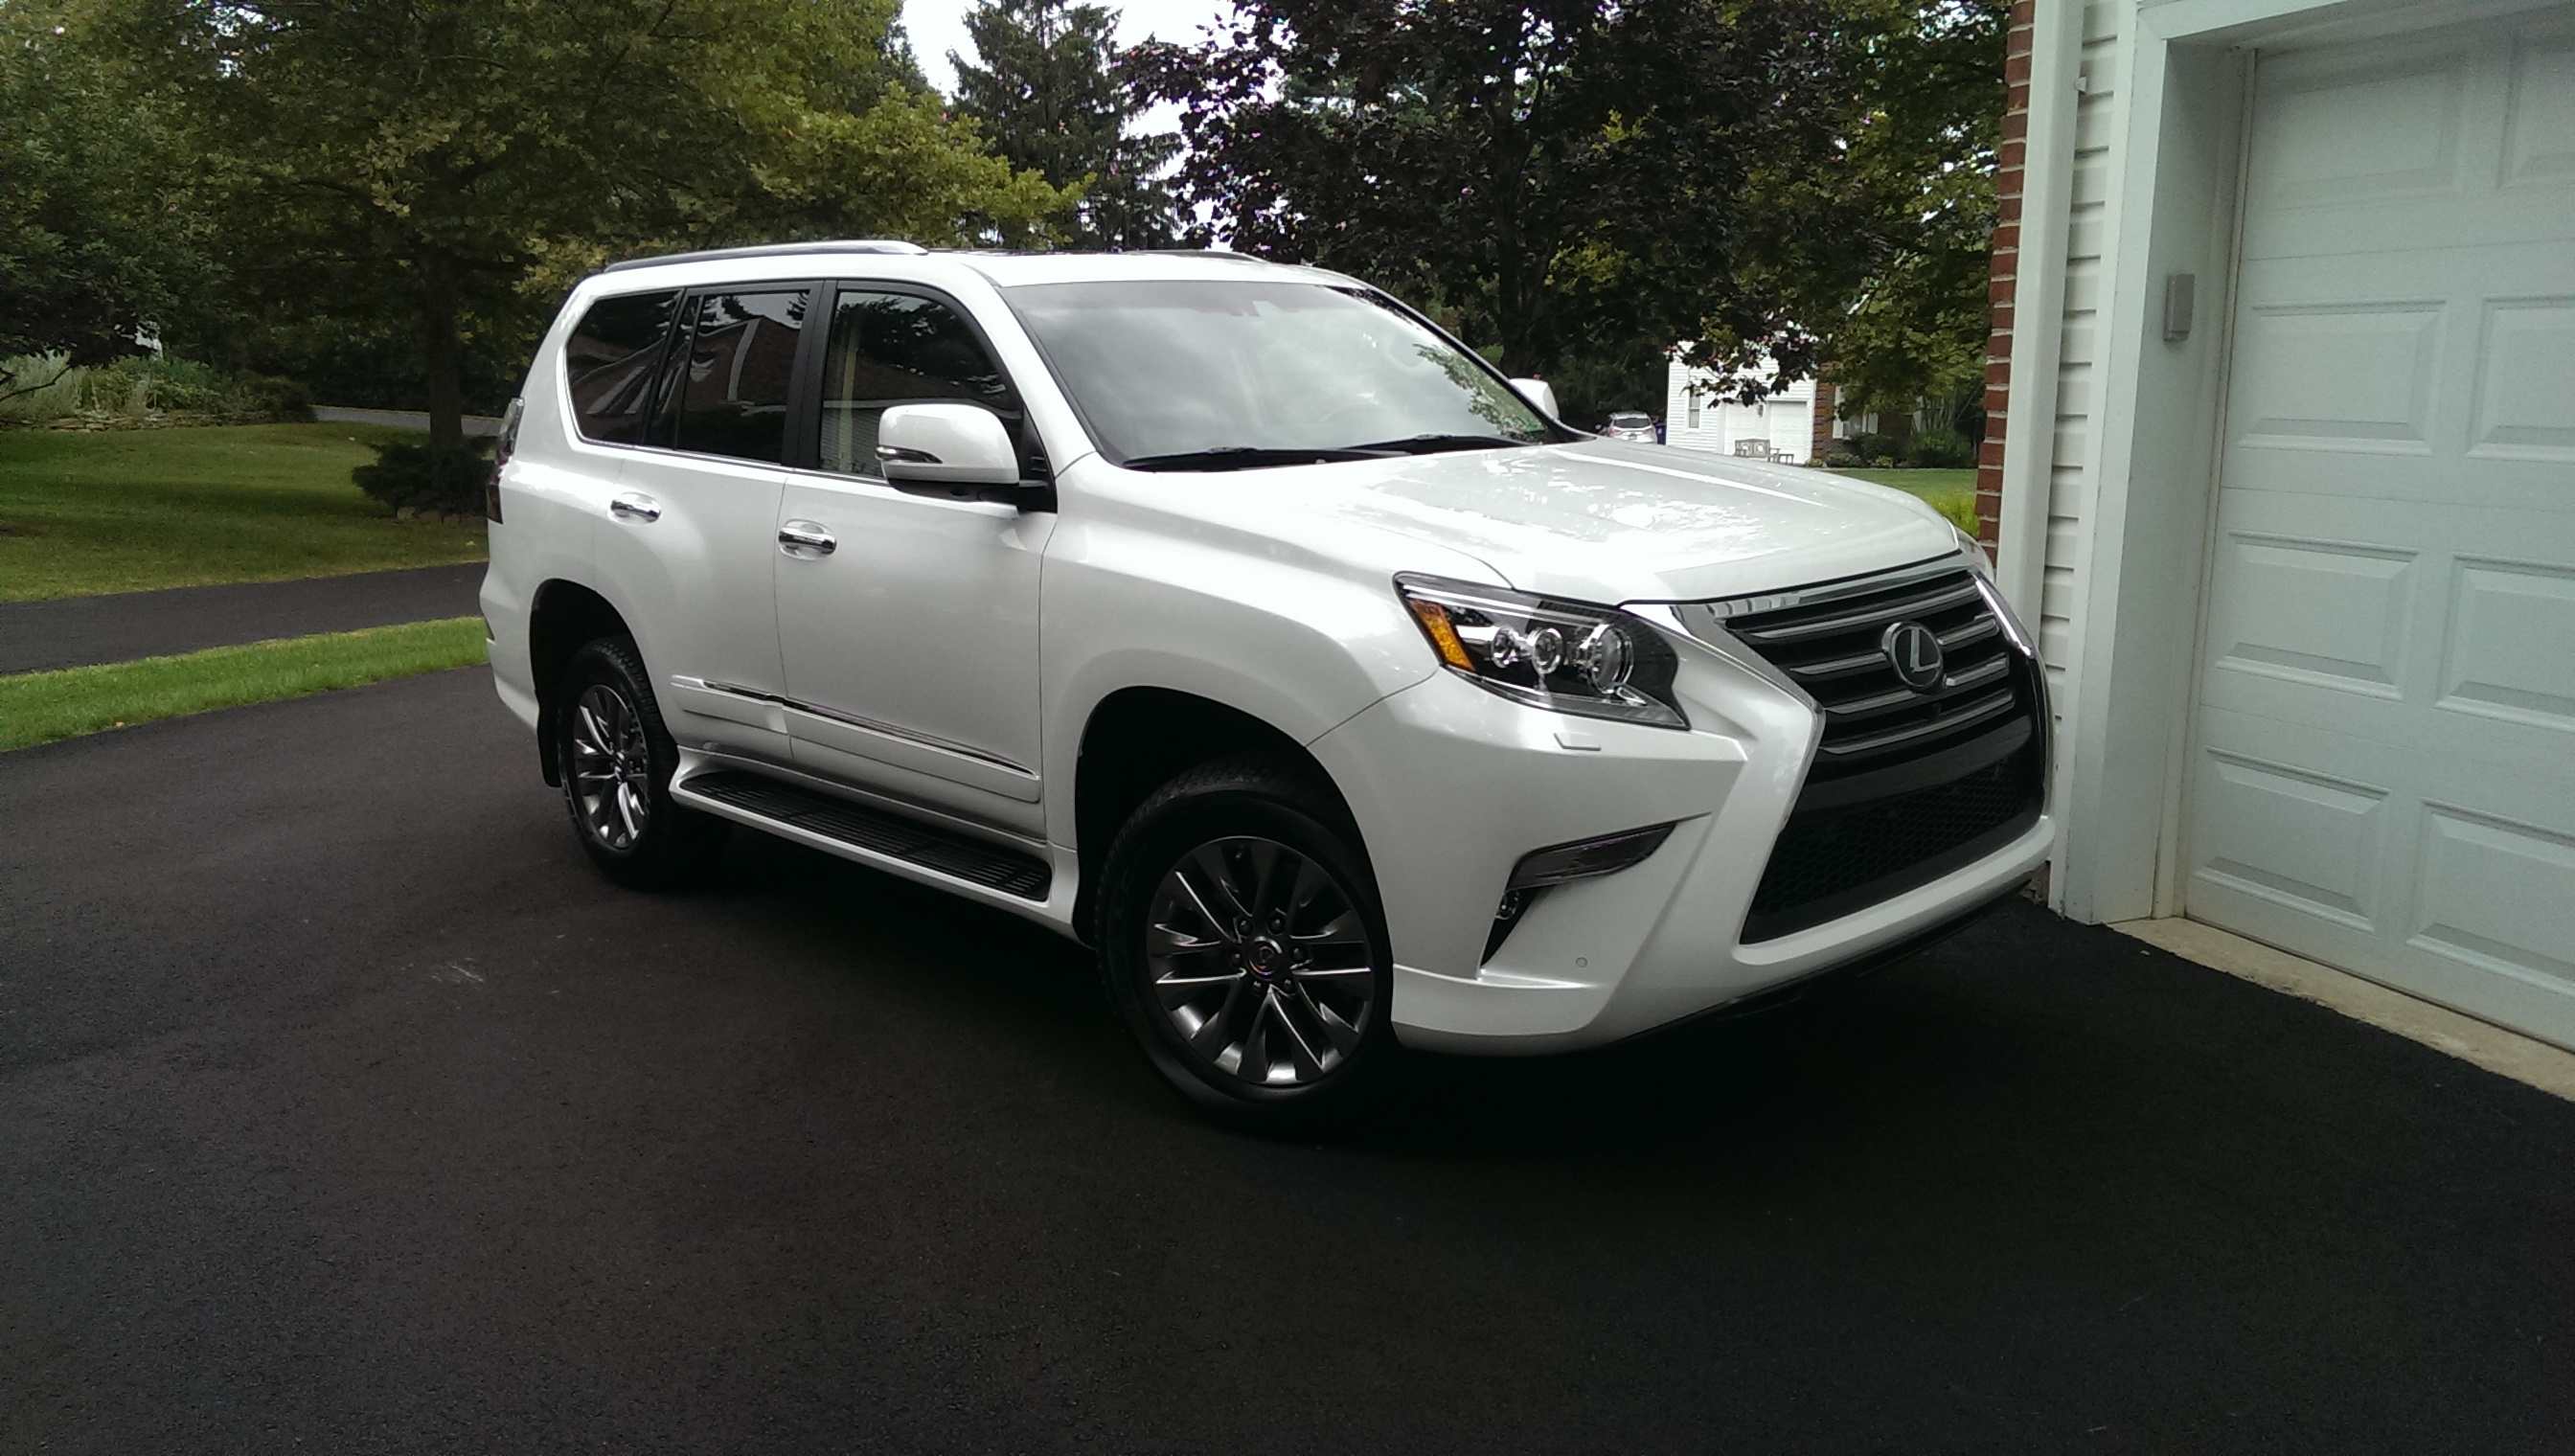 Wel e to Club Lexus GX460 owner roll call & member introduction